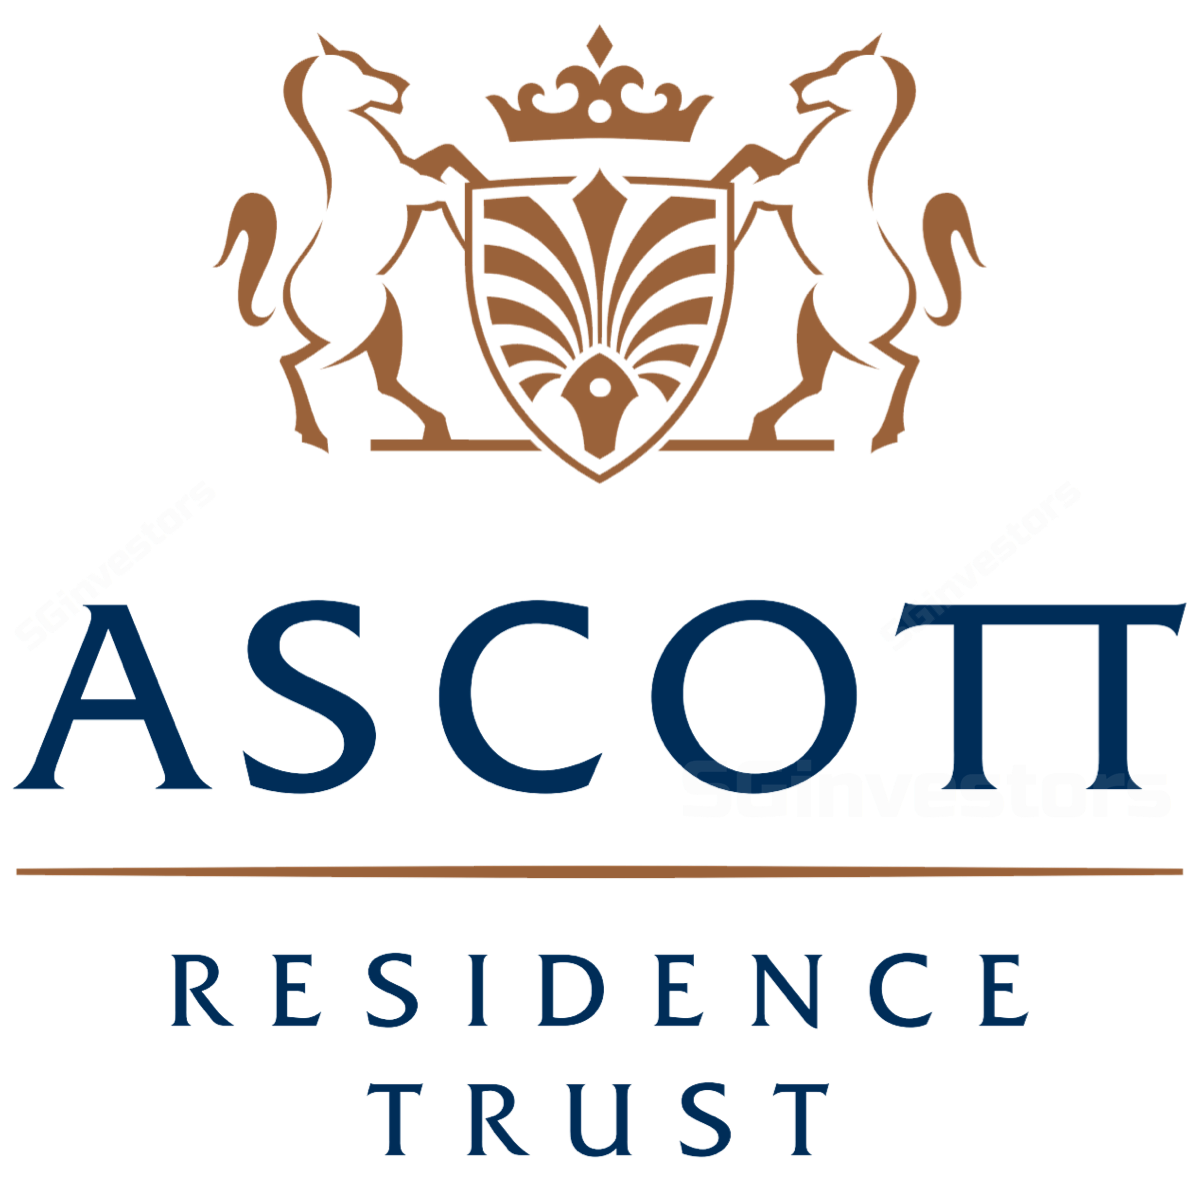 Ascott Residence Trust - CIMB Research 2017-10-25: 3Q17: Lacks A Little Zing